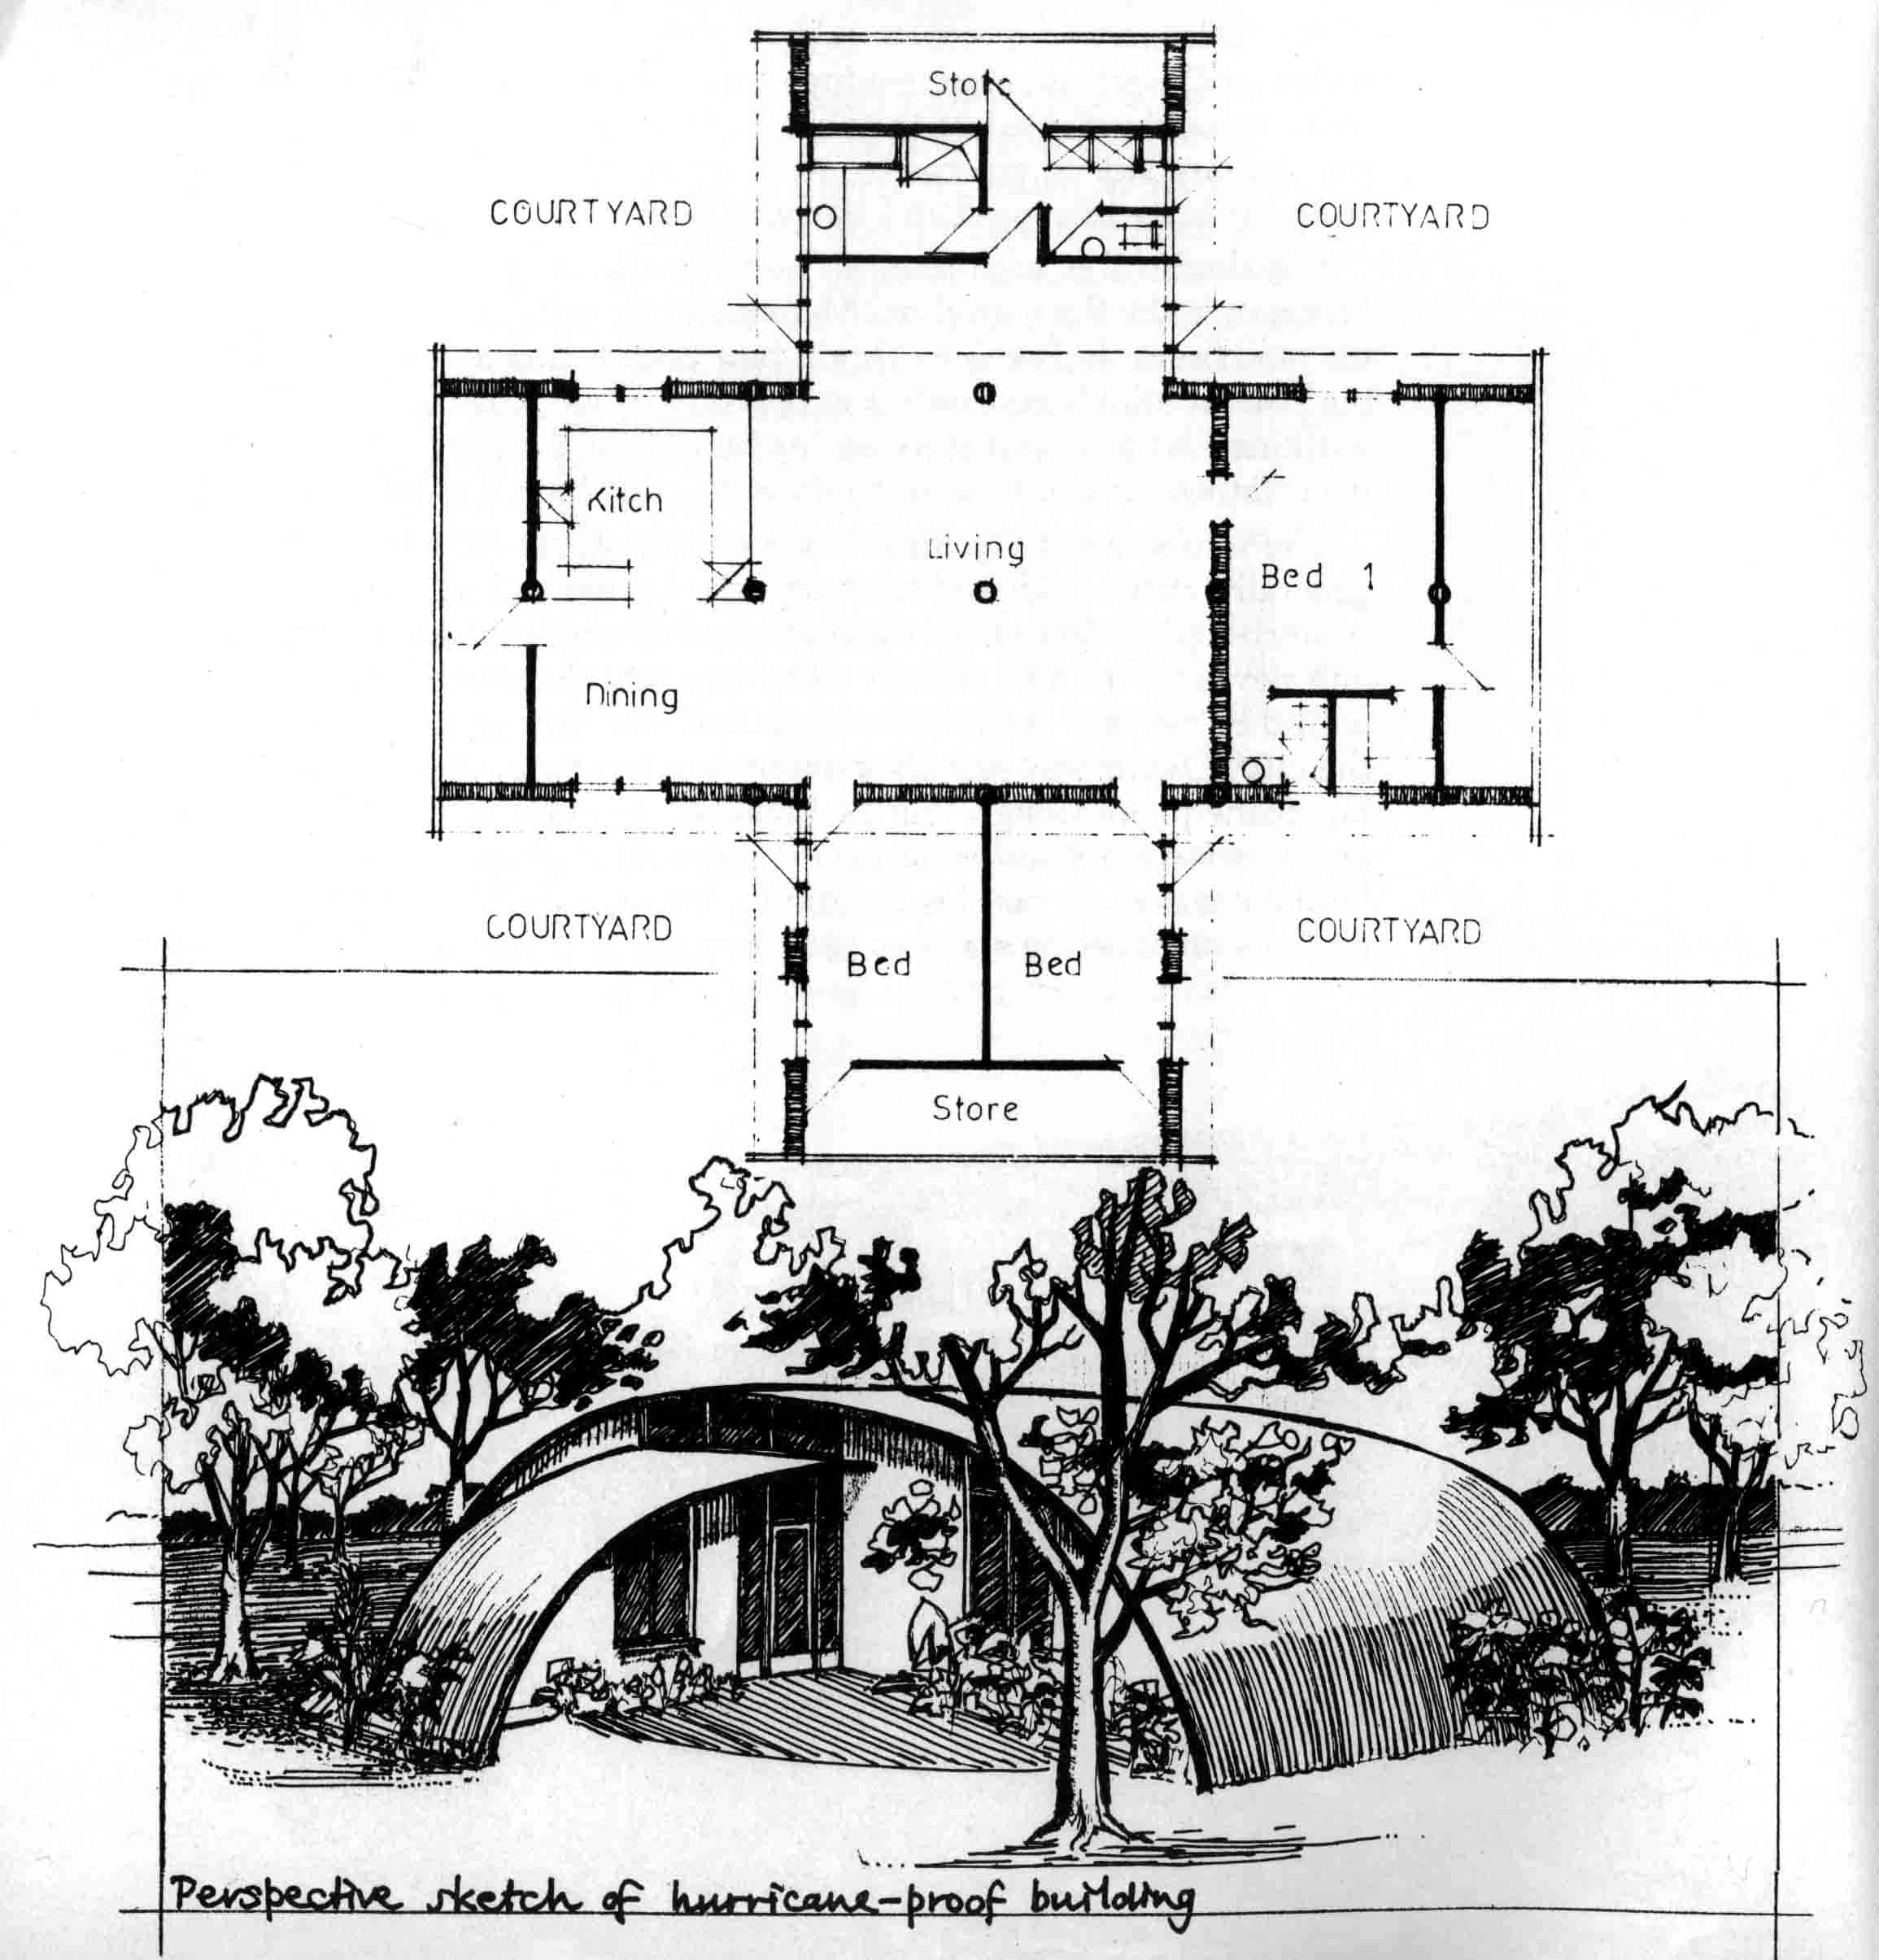 Plan of the Freeman house